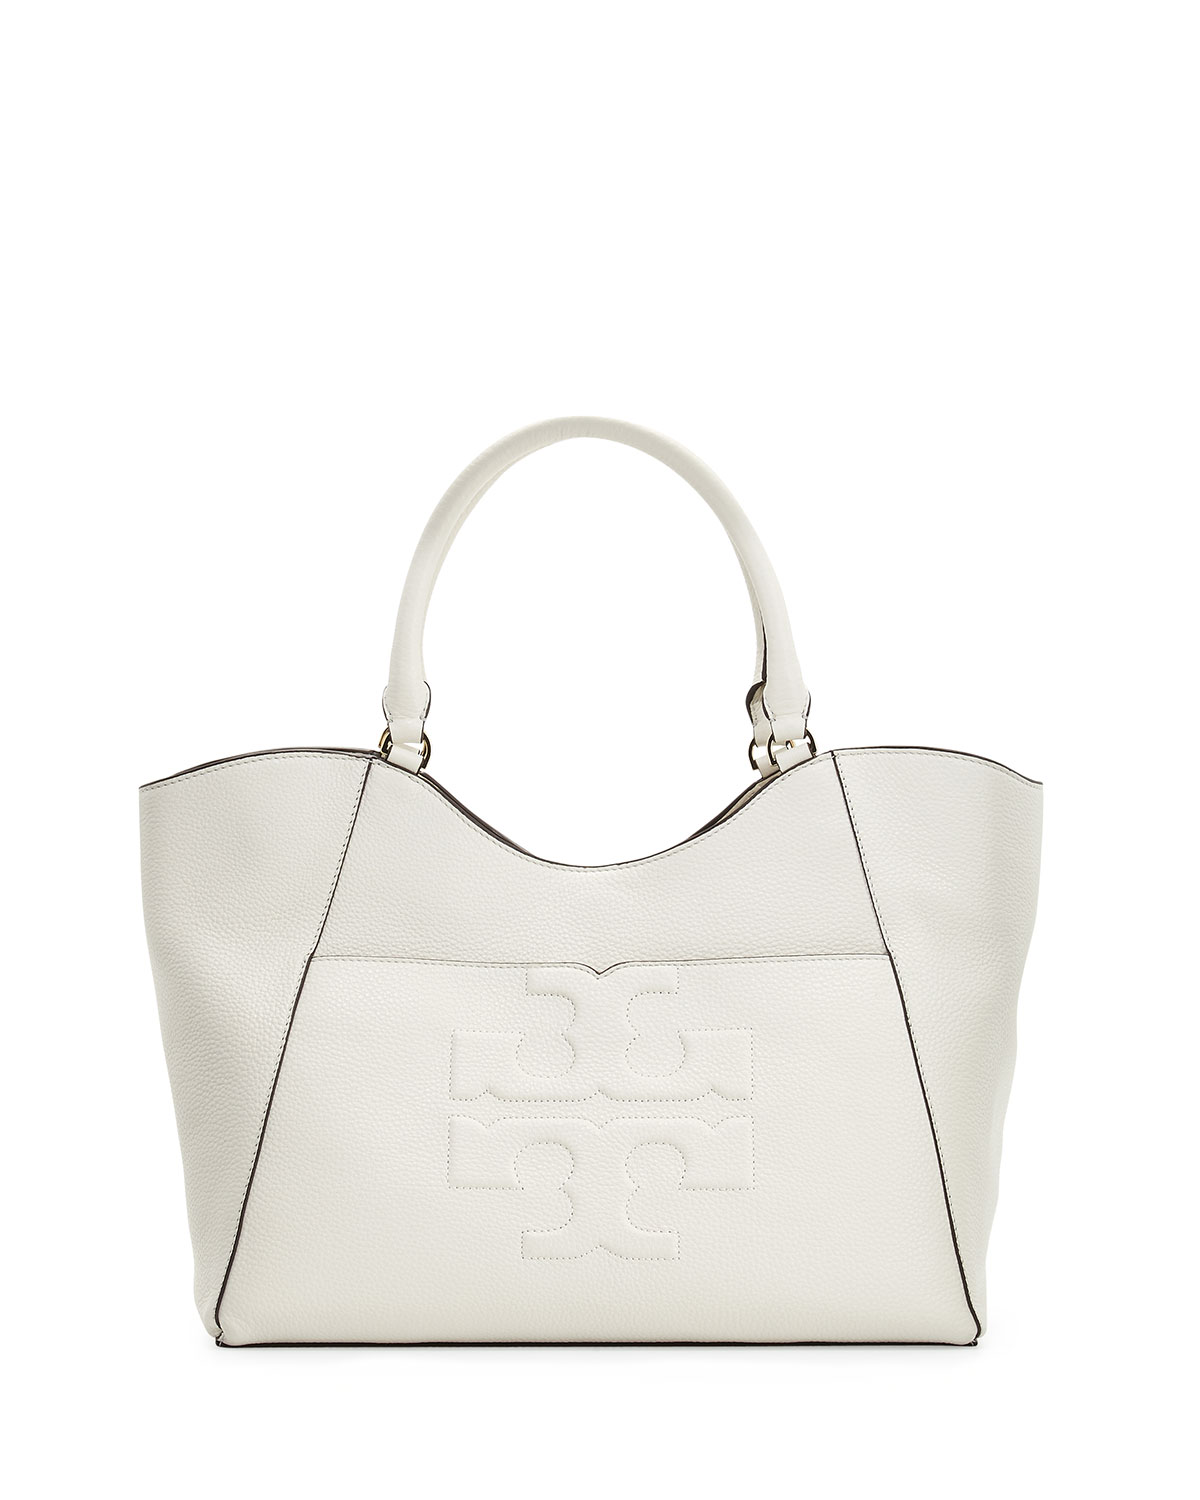 é T Leather Tote Bag New Ivory